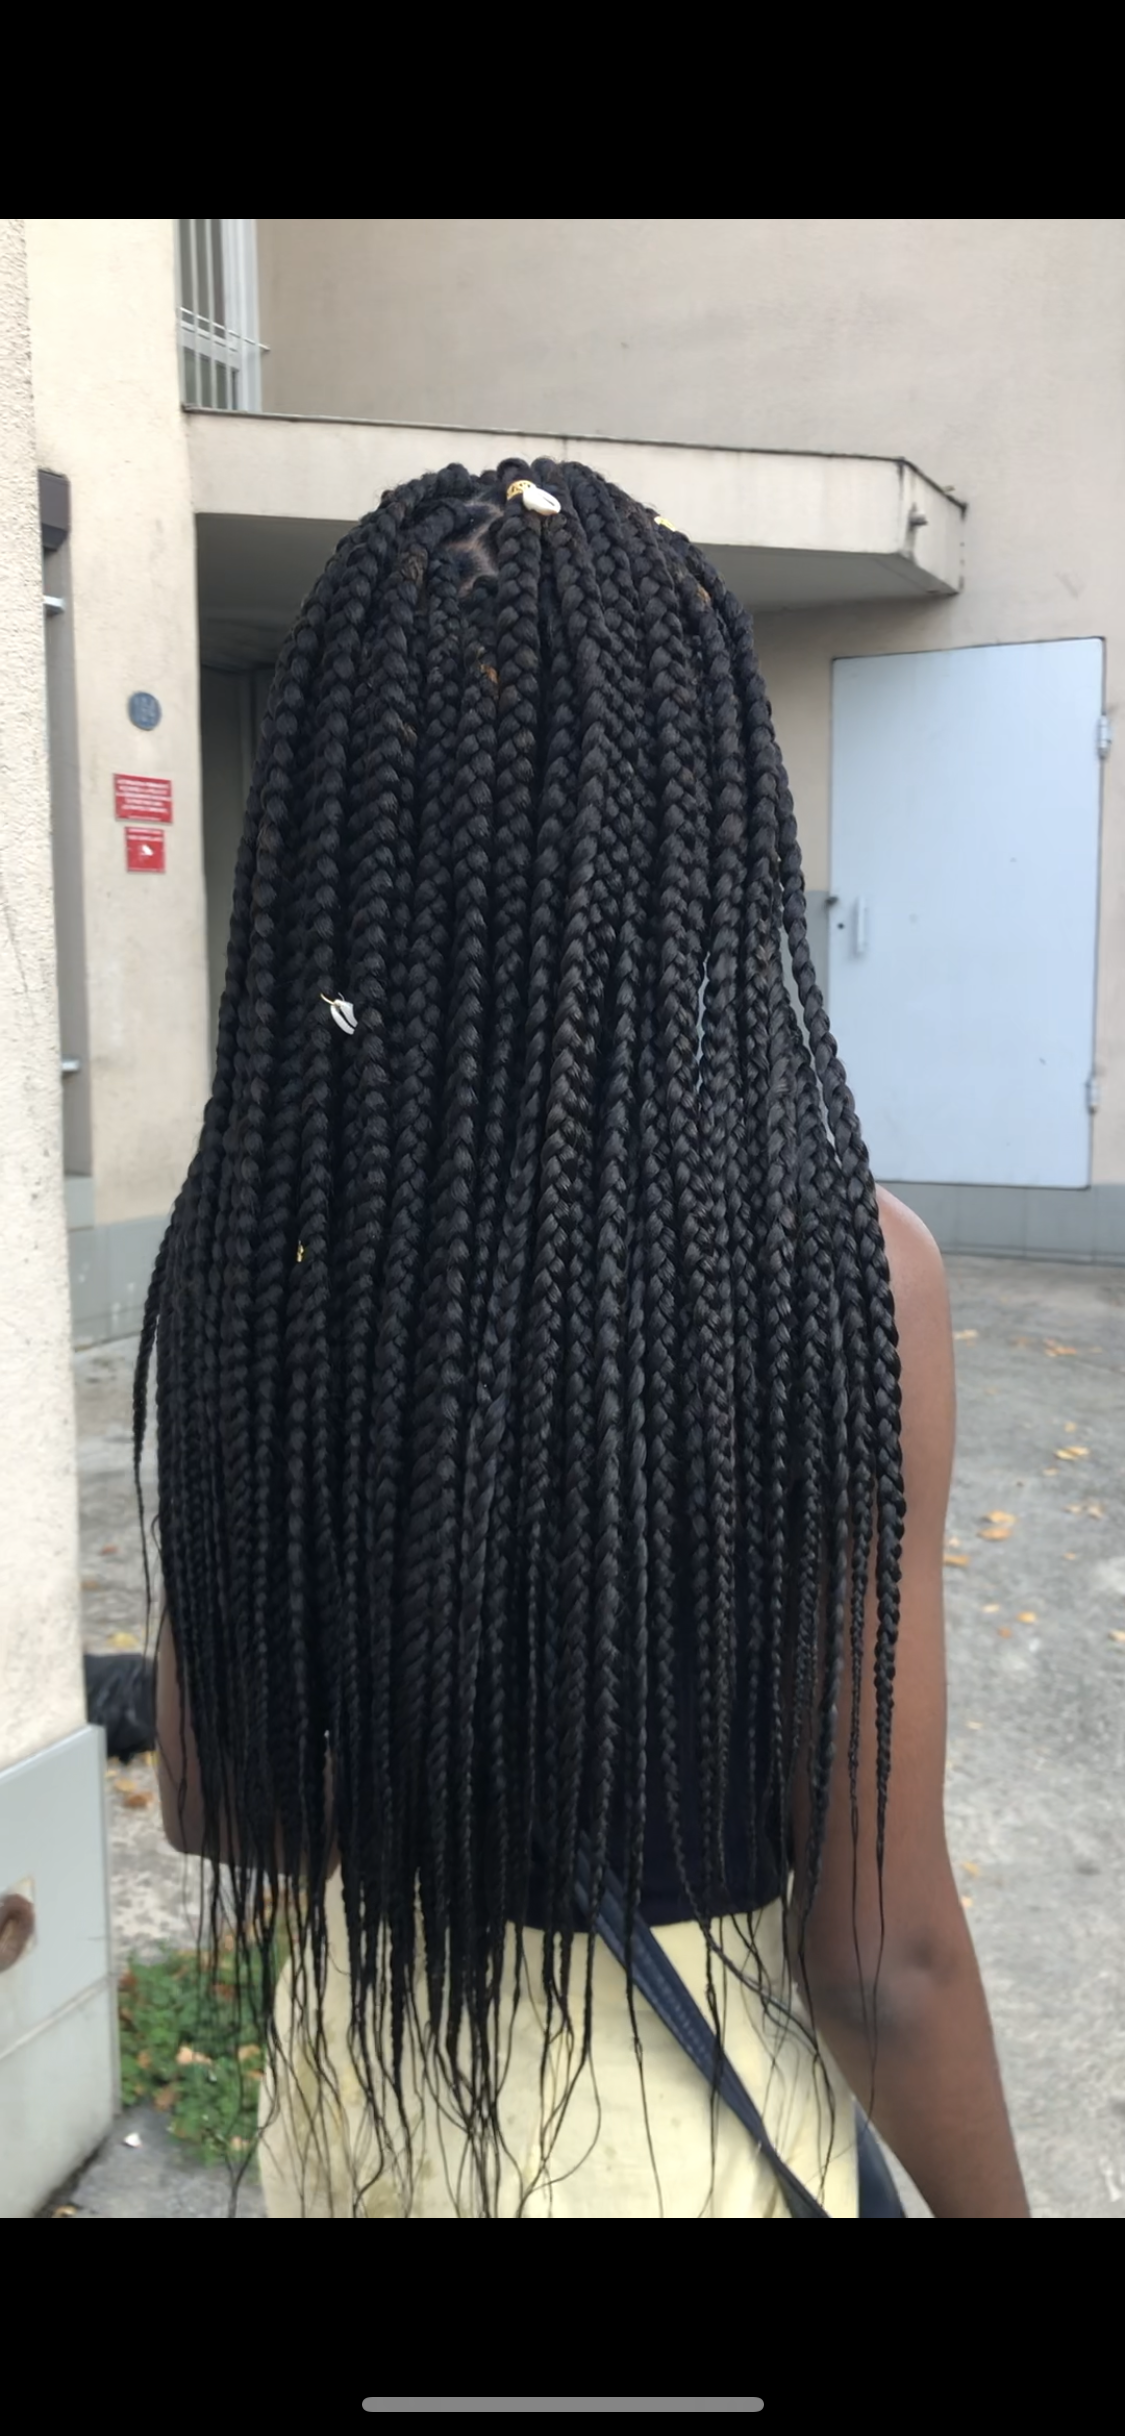 salon de coiffure afro tresse tresses box braids crochet braids vanilles tissages paris 75 77 78 91 92 93 94 95 DITTISAT